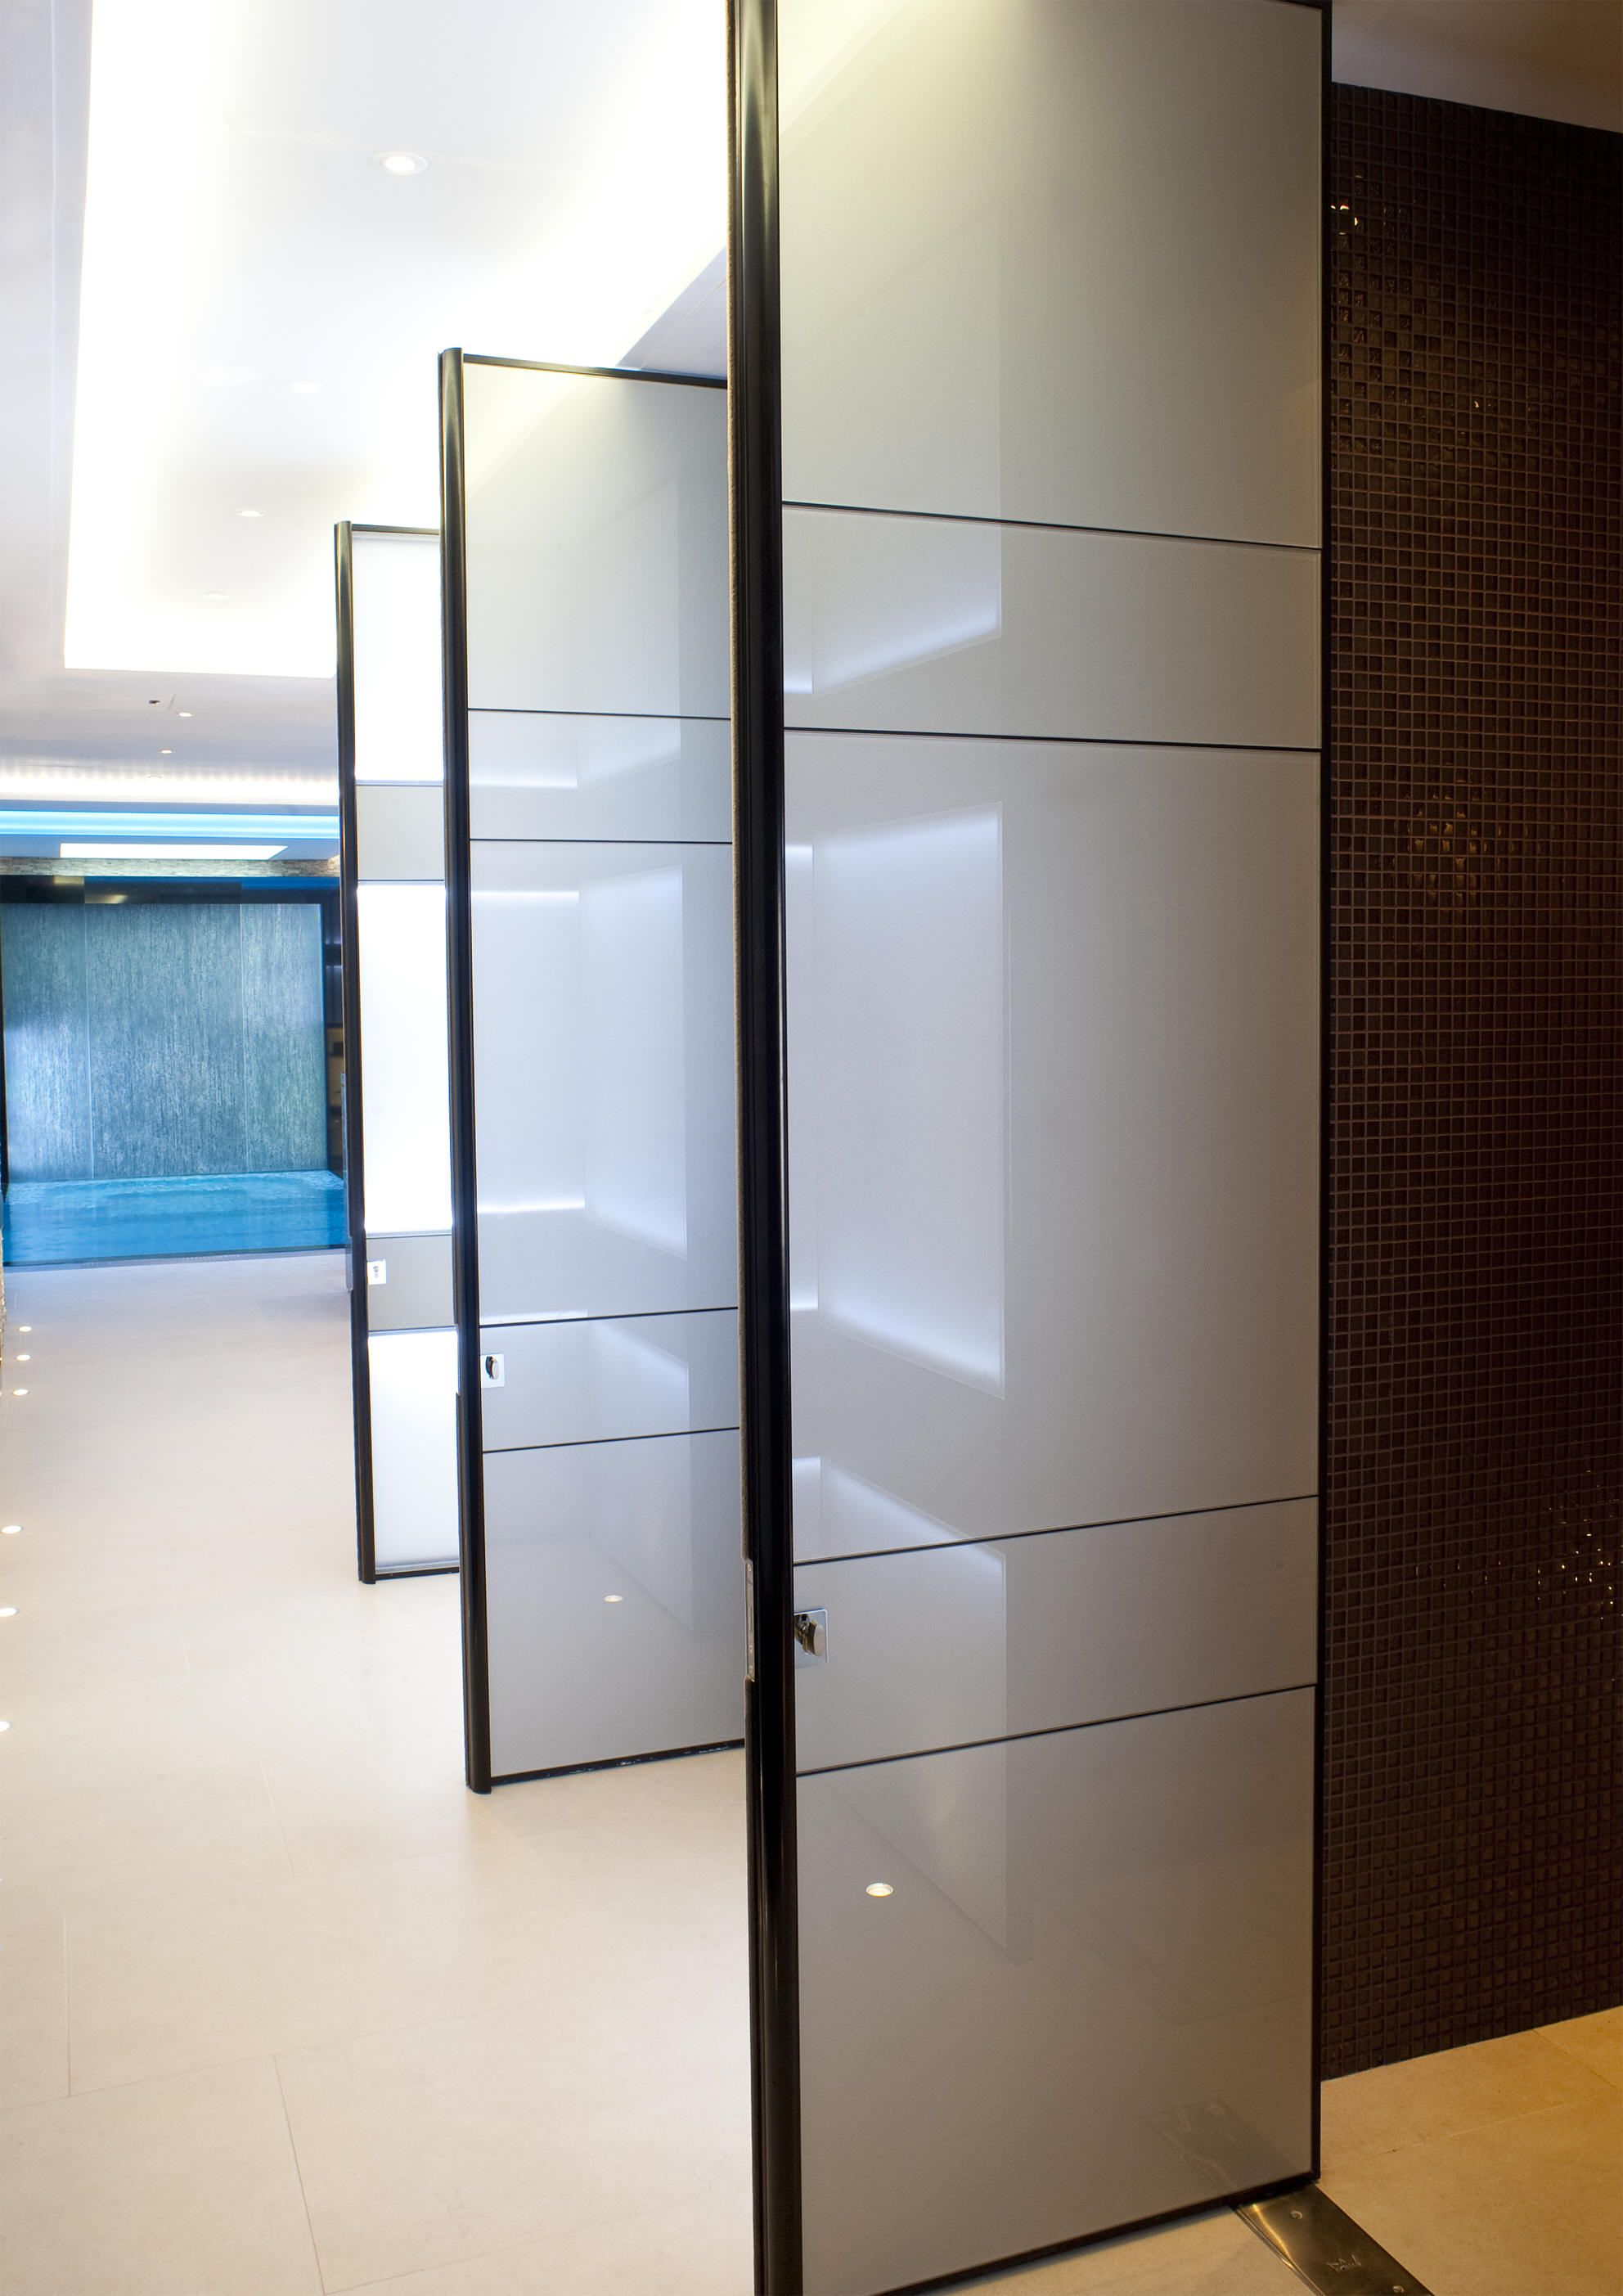 Pivoting Doors With Glass Panels With Illumination To The Front Side By Atwork Beleuchtung Raum